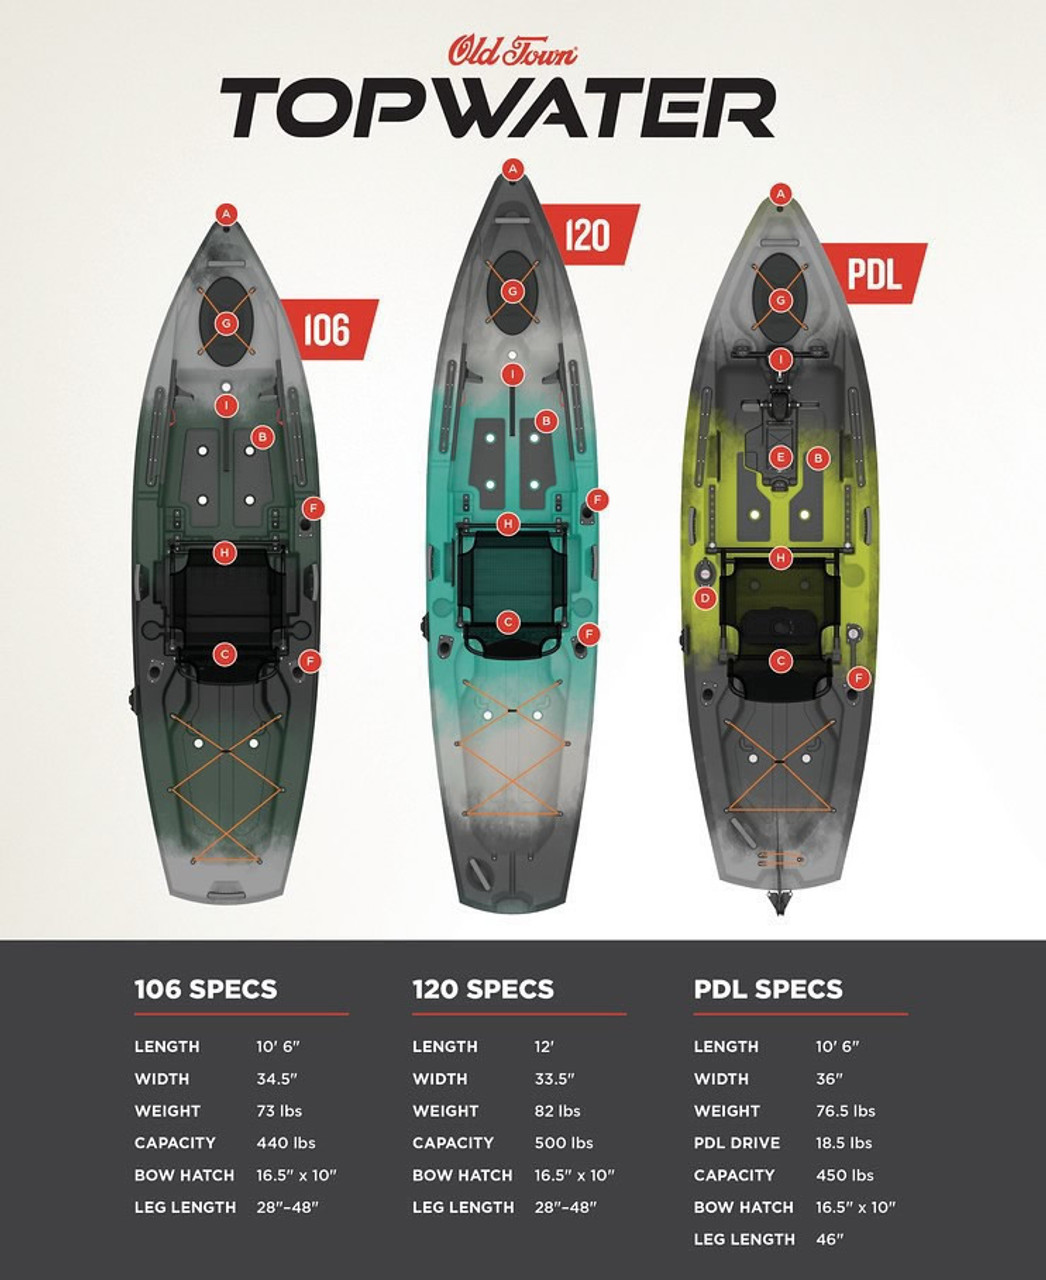 Old Town Topwater PDL 106